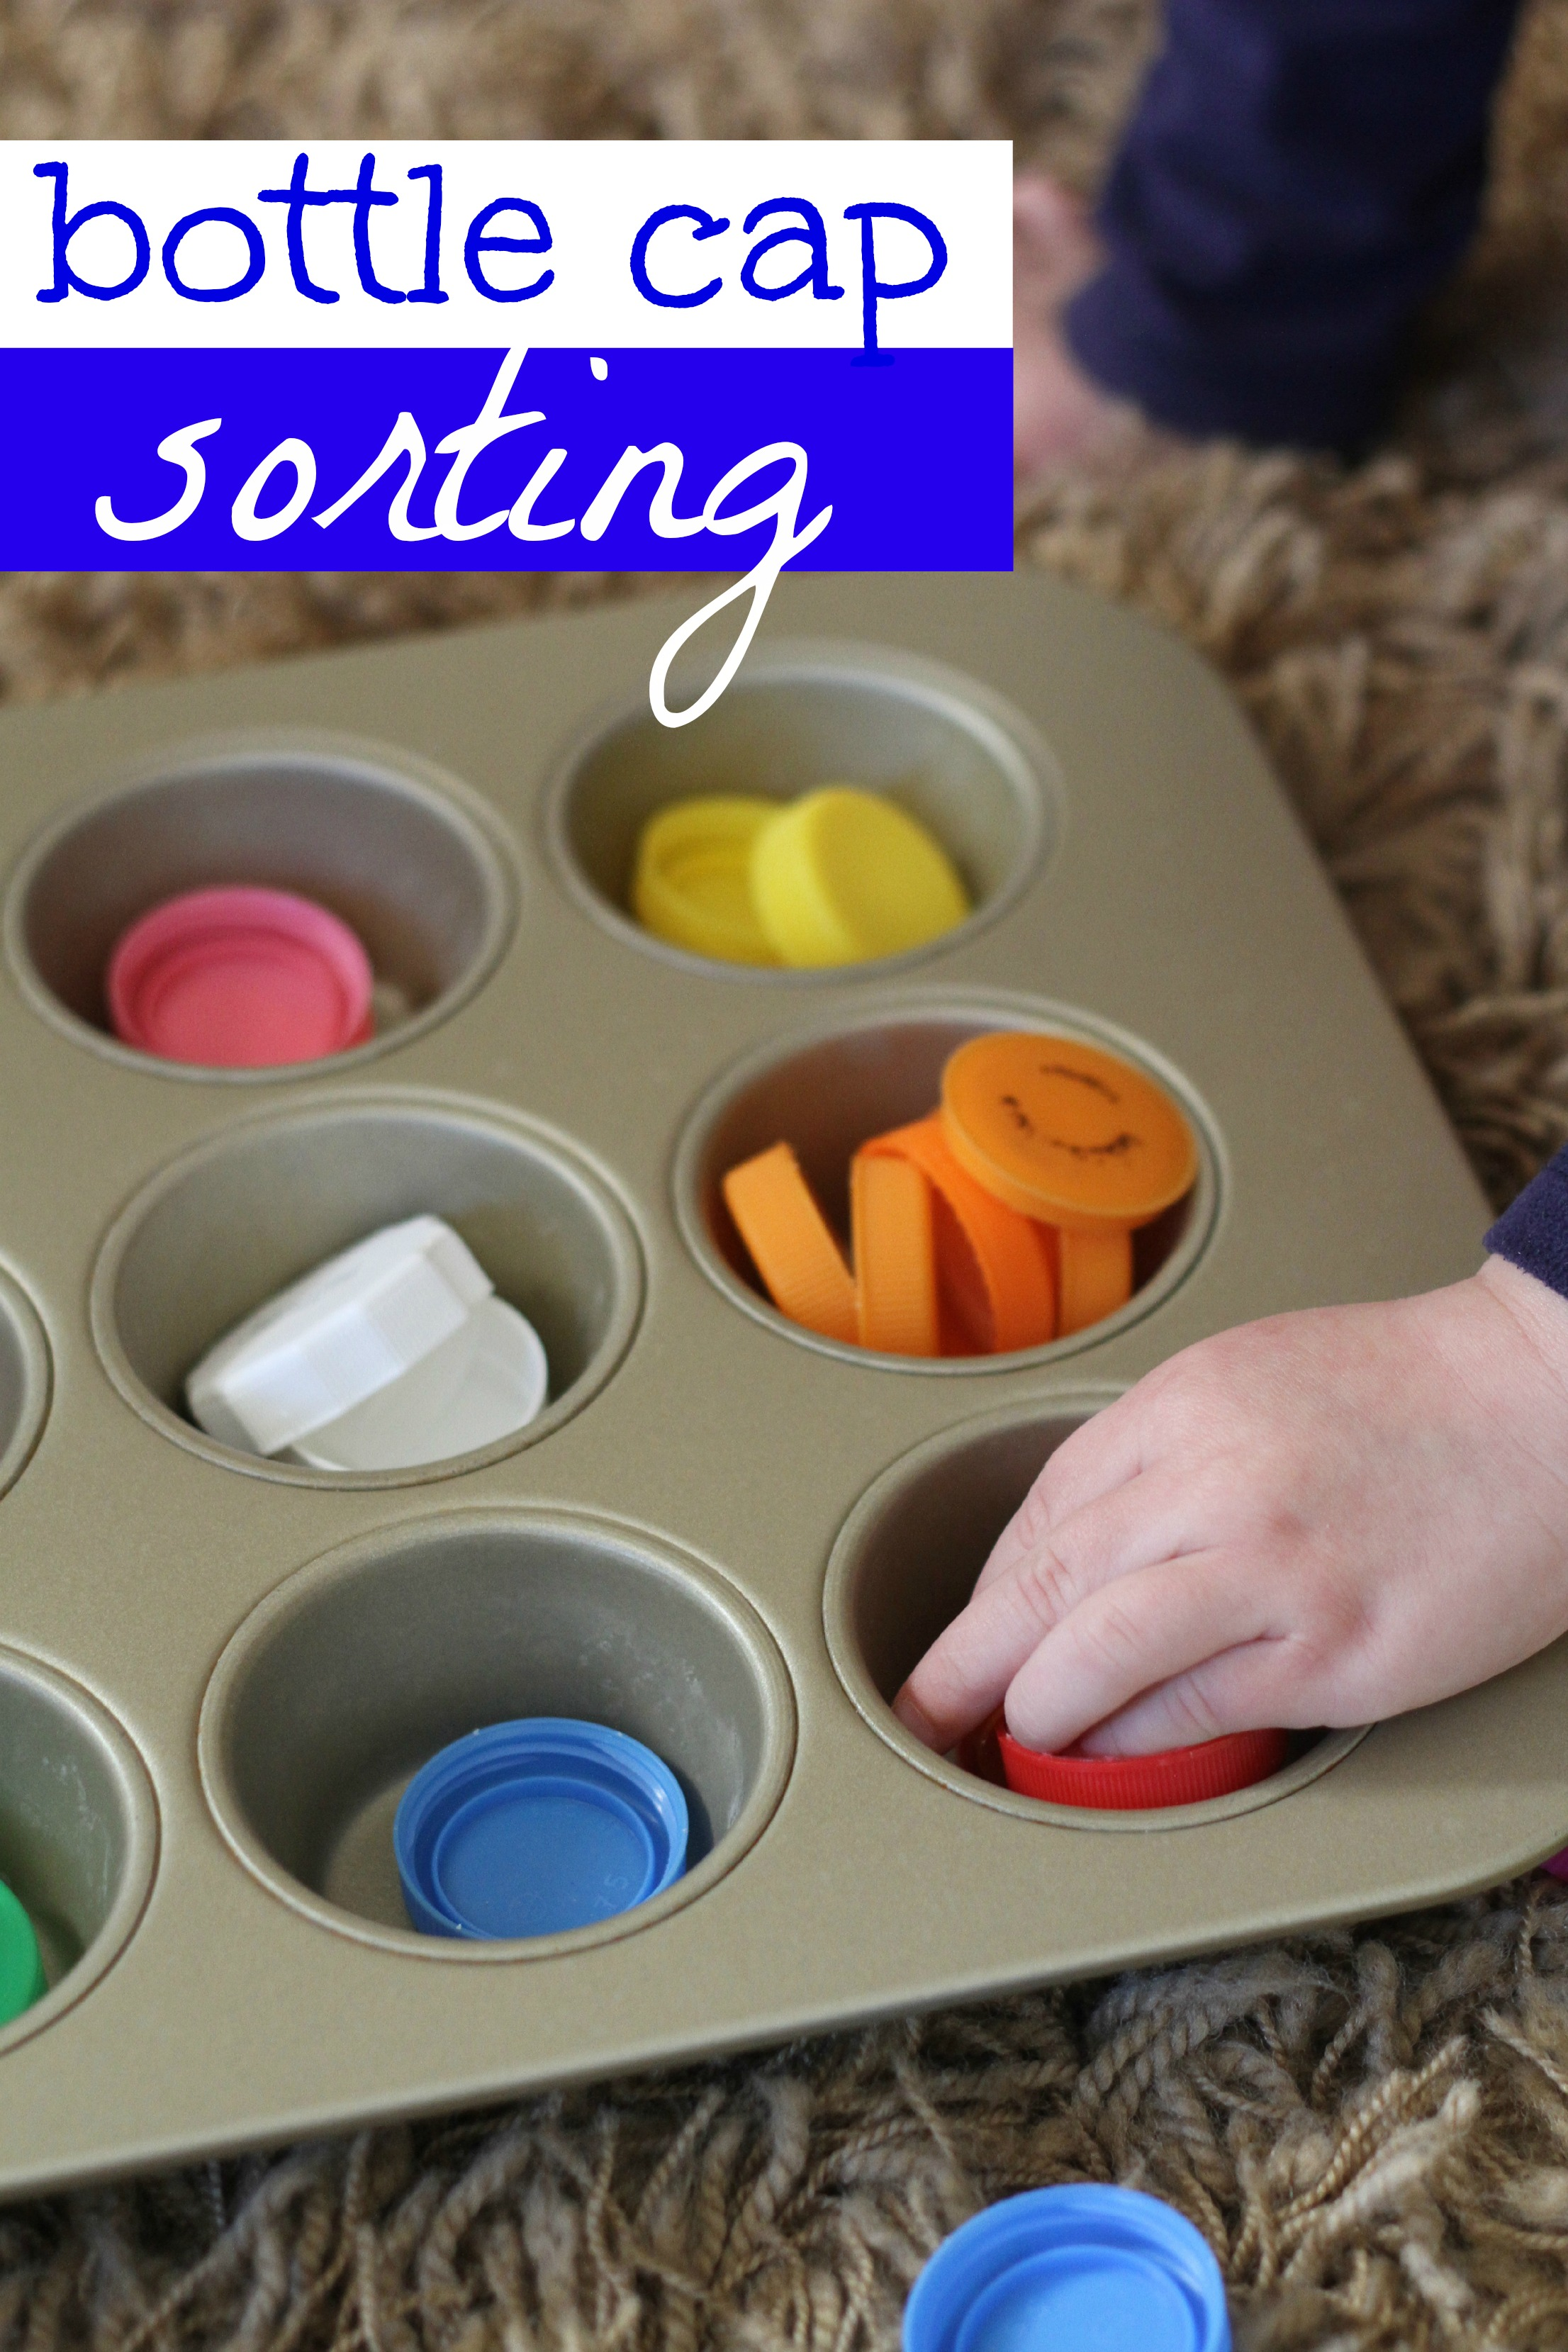 Bottle Cap Sorting